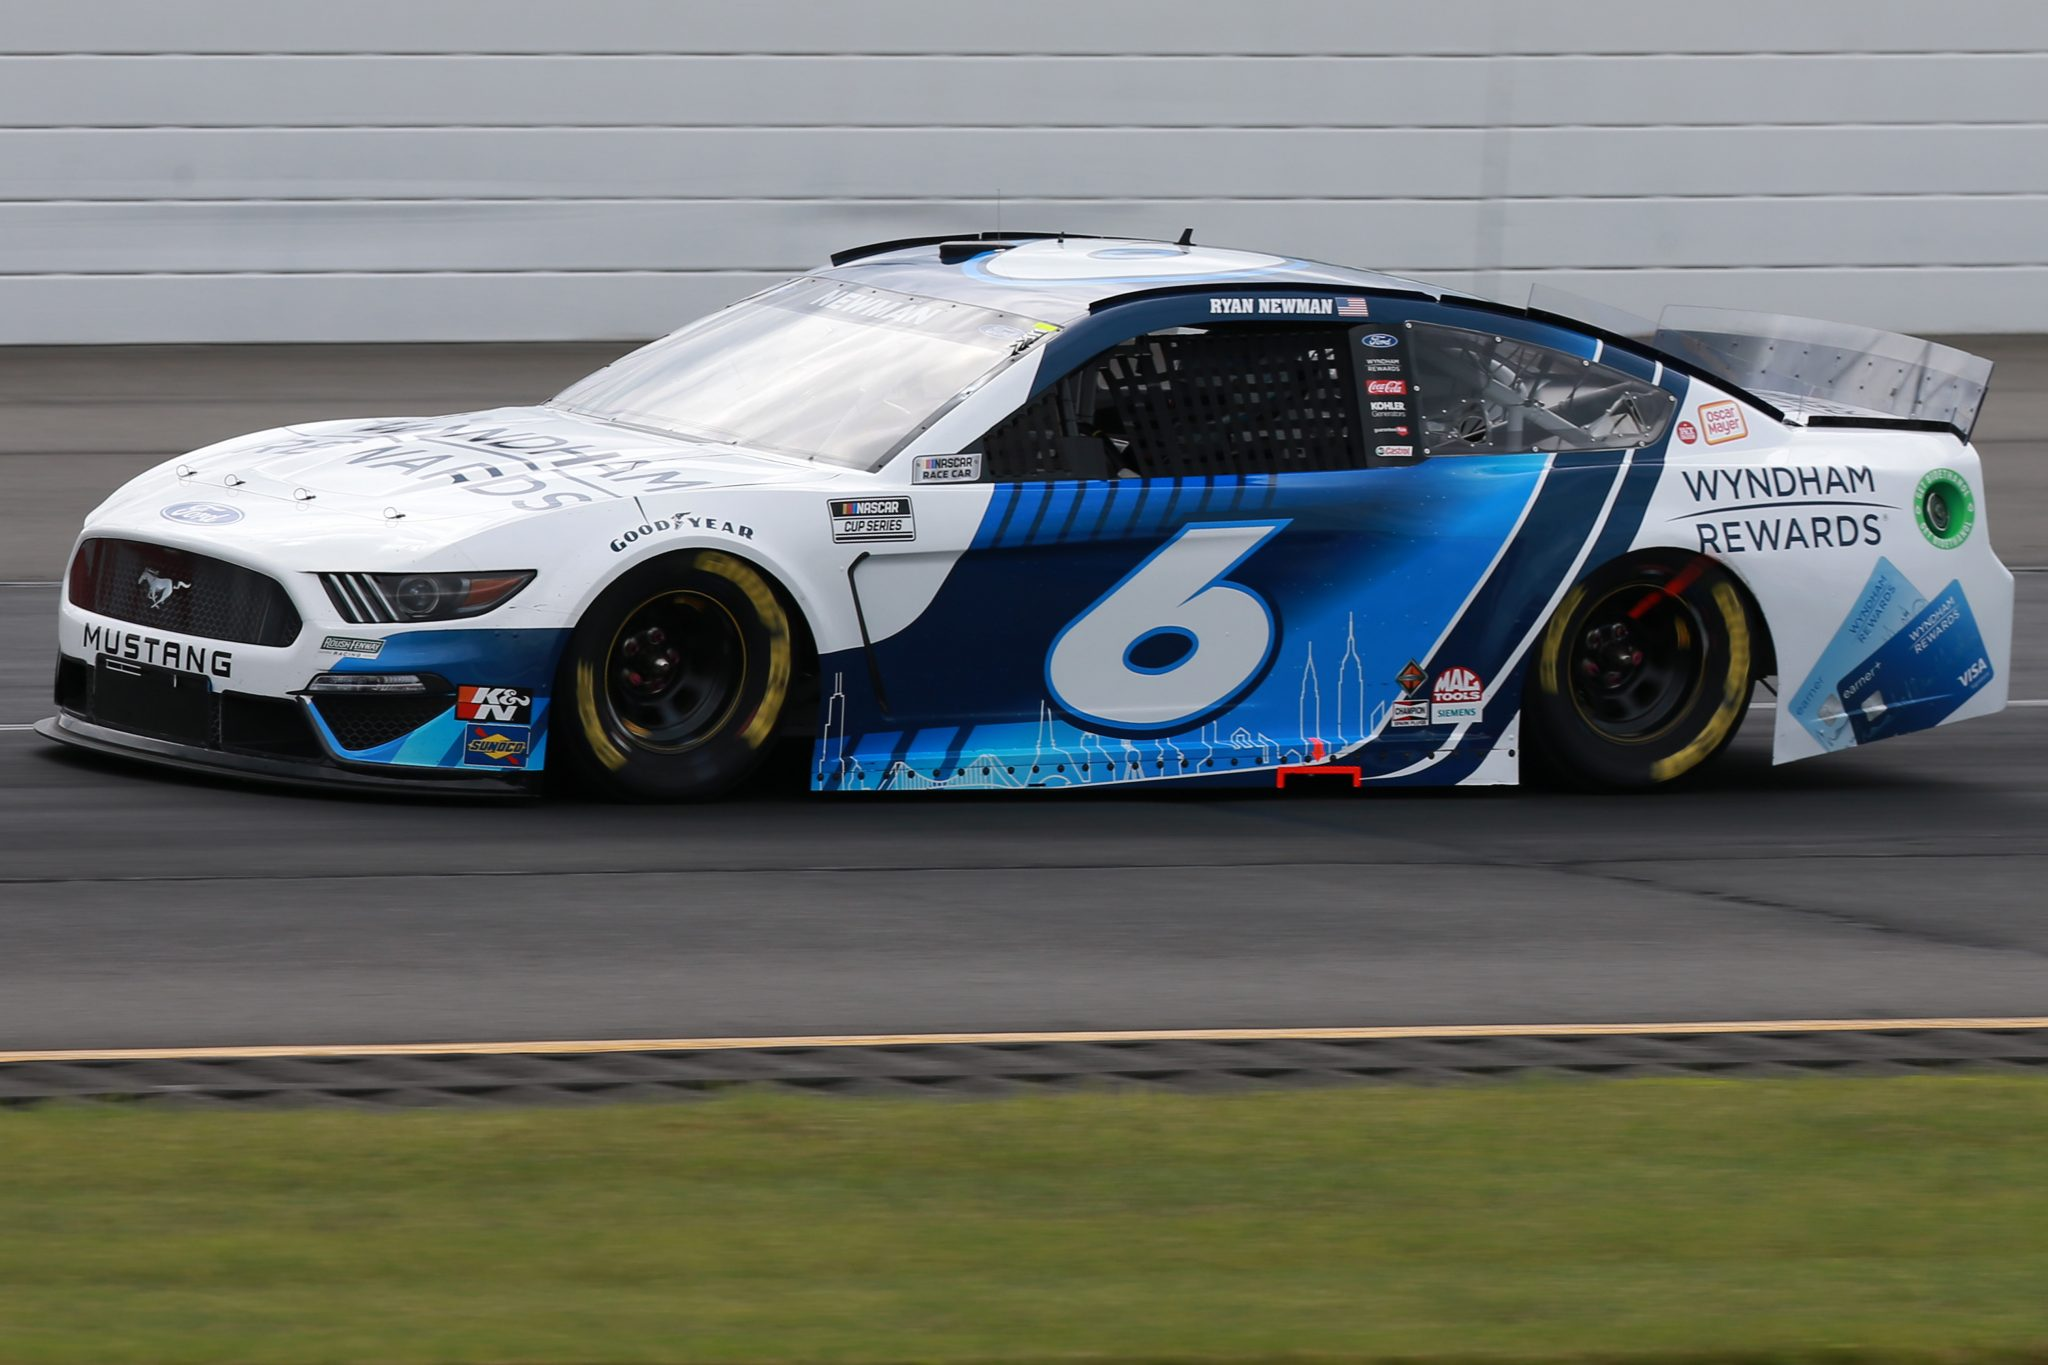 LONG POND, PENNSYLVANIA - JUNE 26: Ryan Newman, driver of the #6 Wyndham Rewards Ford, drives during the NASCAR Cup Series Pocono Organics CBD 325 at Pocono Raceway on June 26, 2021 in Long Pond, Pennsylvania. (Photo by Sean Gardner/Getty Images) | Getty Images